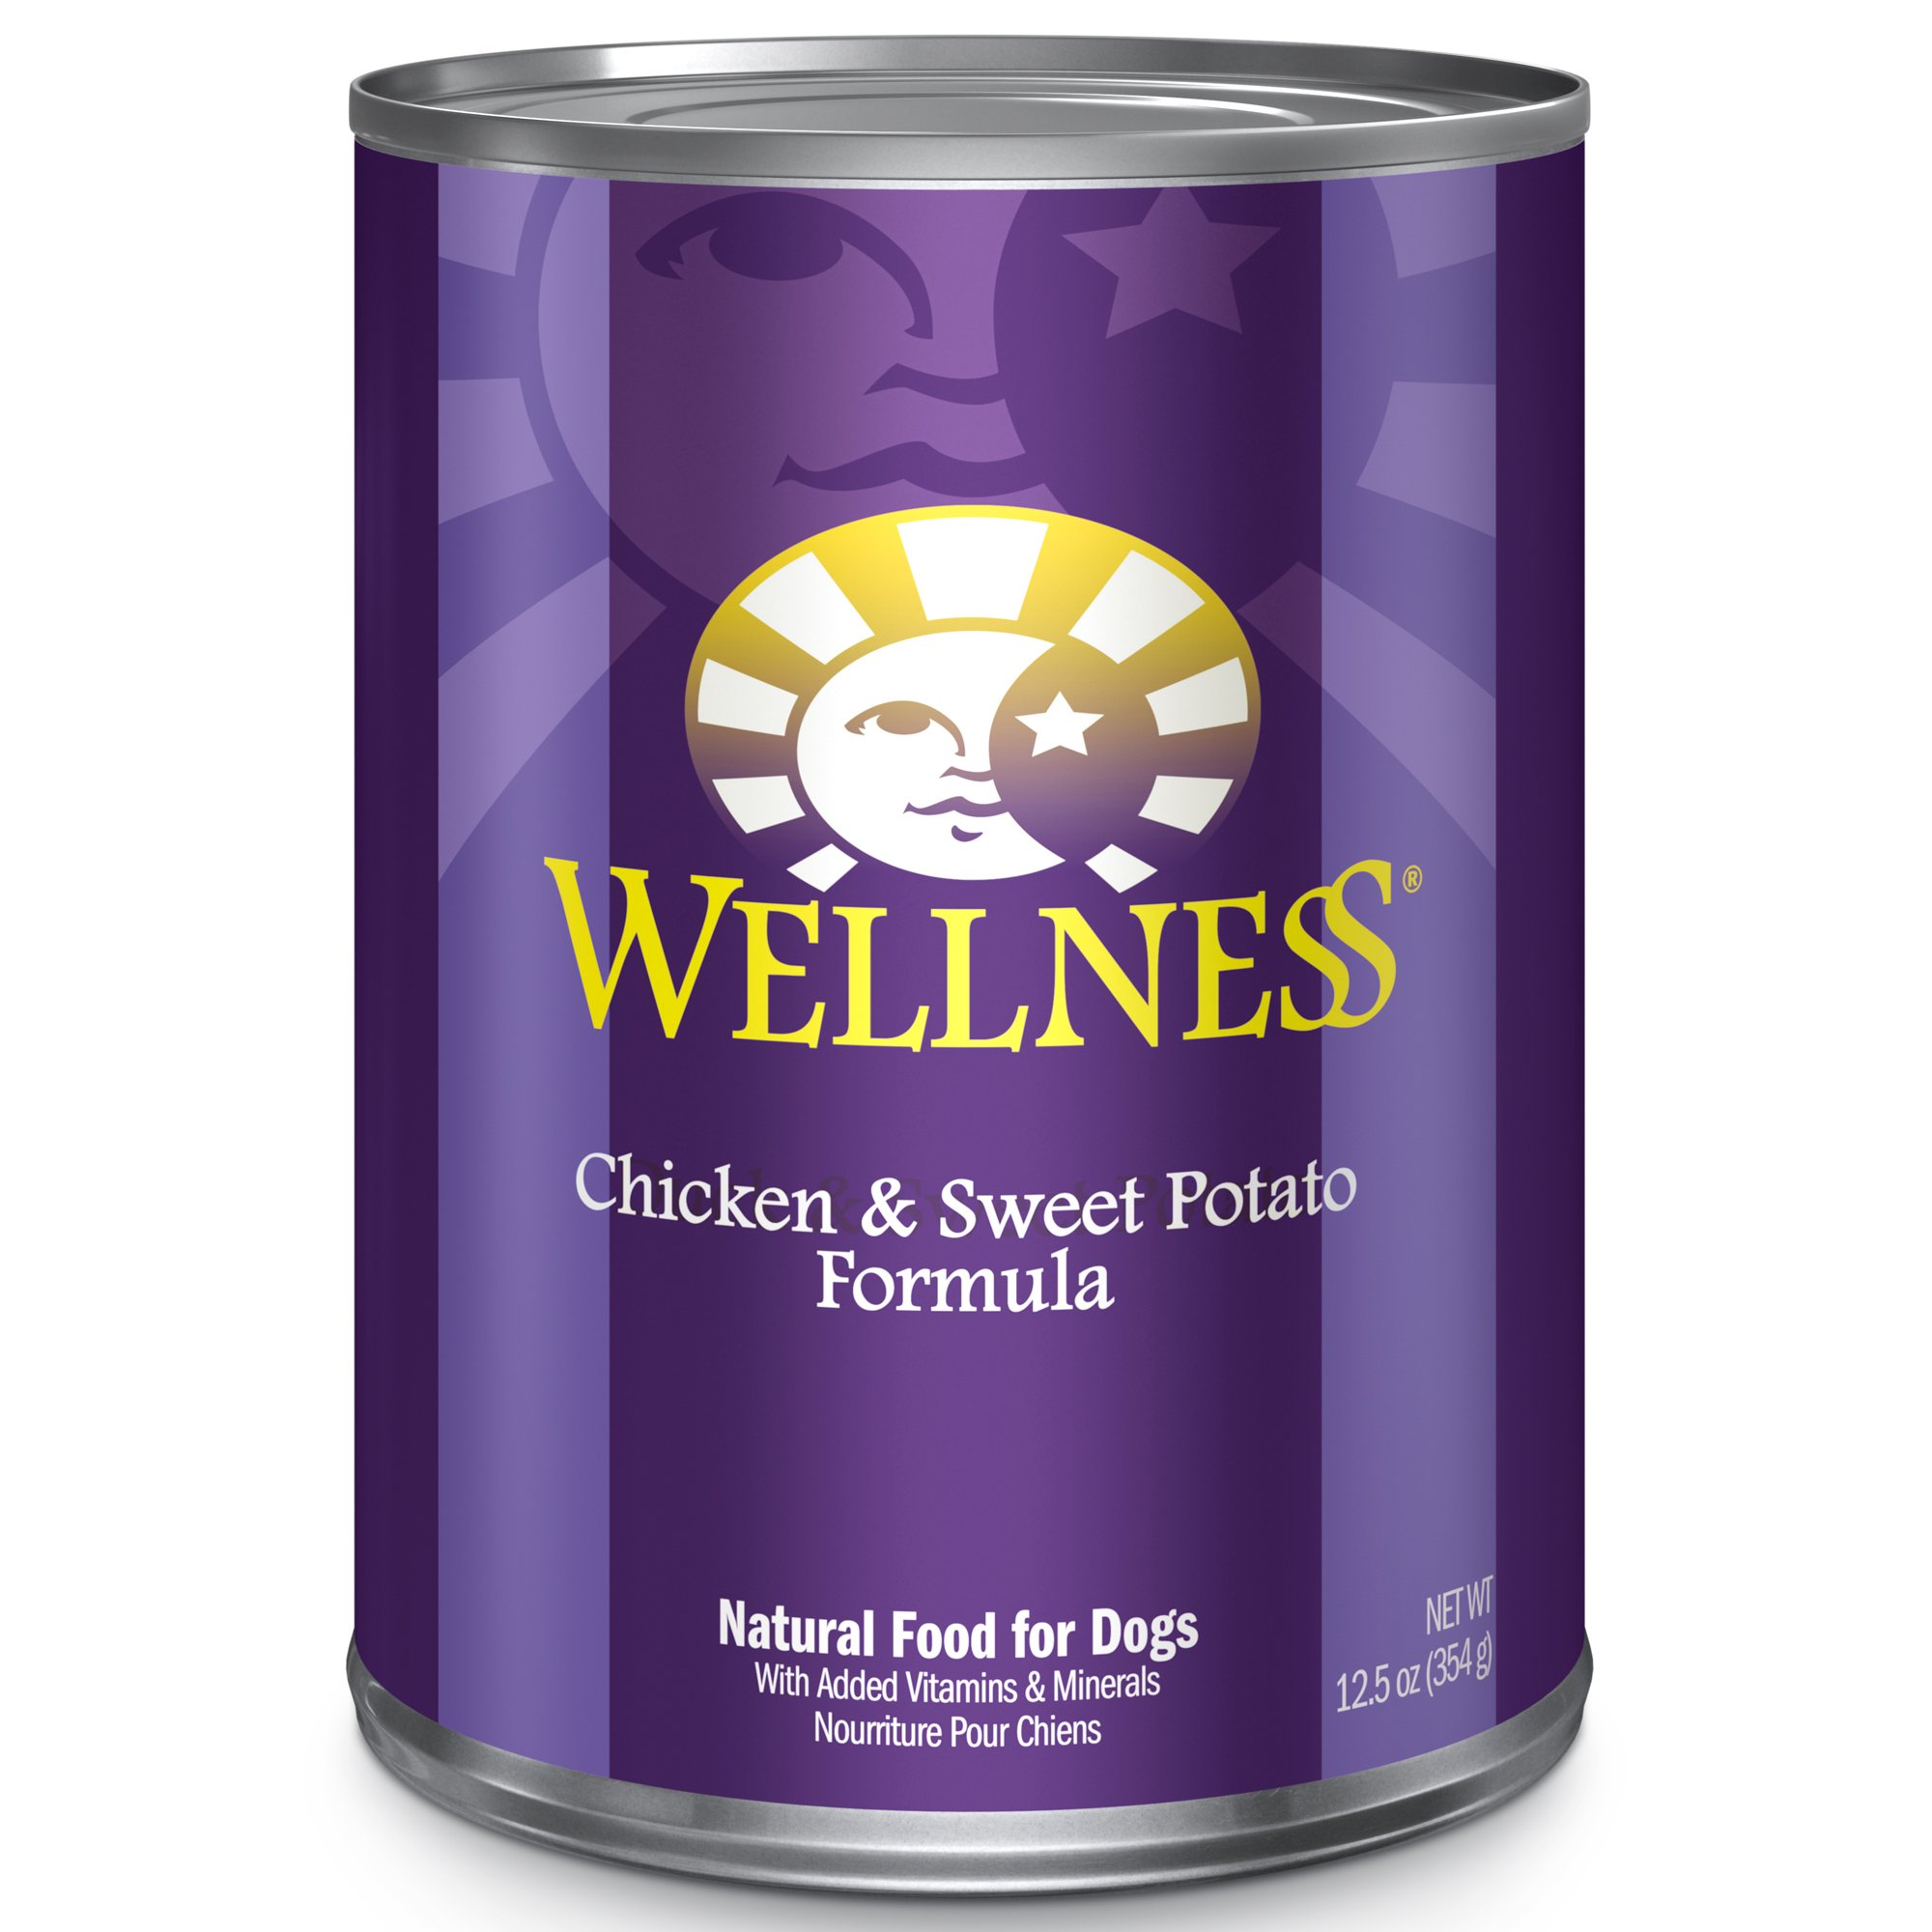 Wellness Complete Health Natural Wet Canned Dog Food, Chicken & Sweet Potato, 12.5-Ounce Can (Pack Of 12) by Wellness Natural Pet Food